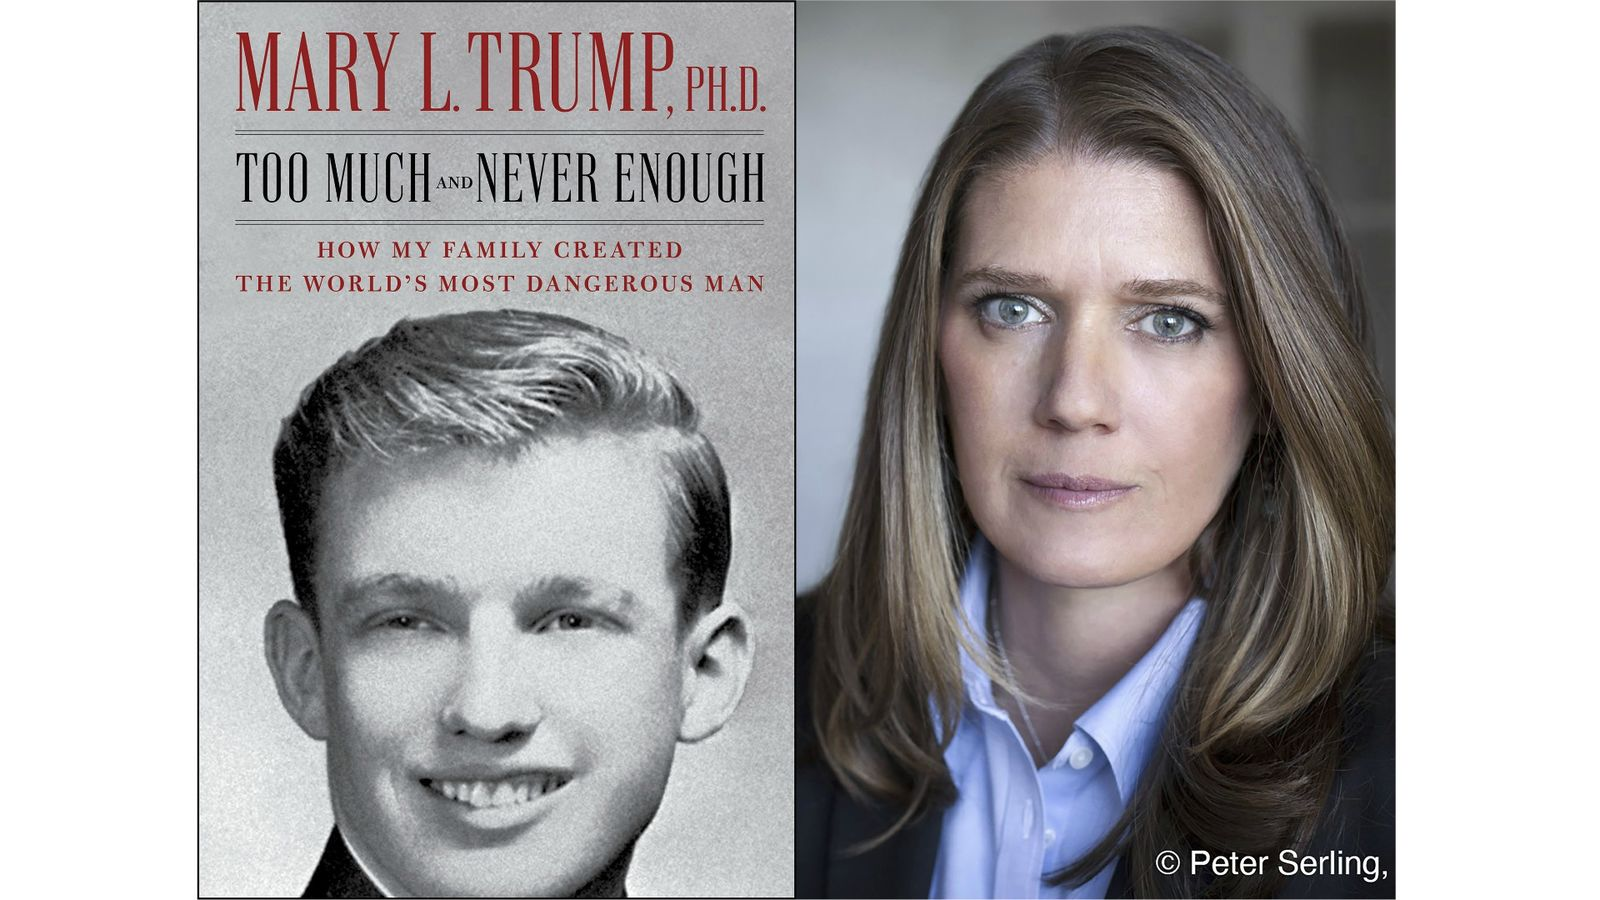 "<p>This combination photo shows the cover art for ""Too Much and Never Enough: How My Family Created the World's Most Dangerous Man"", left, and a portrait of author Mary L. Trump, Ph.D. (Simon & Schuster, left, and Peter Serling/Simon & Schuster via AP)</p>"